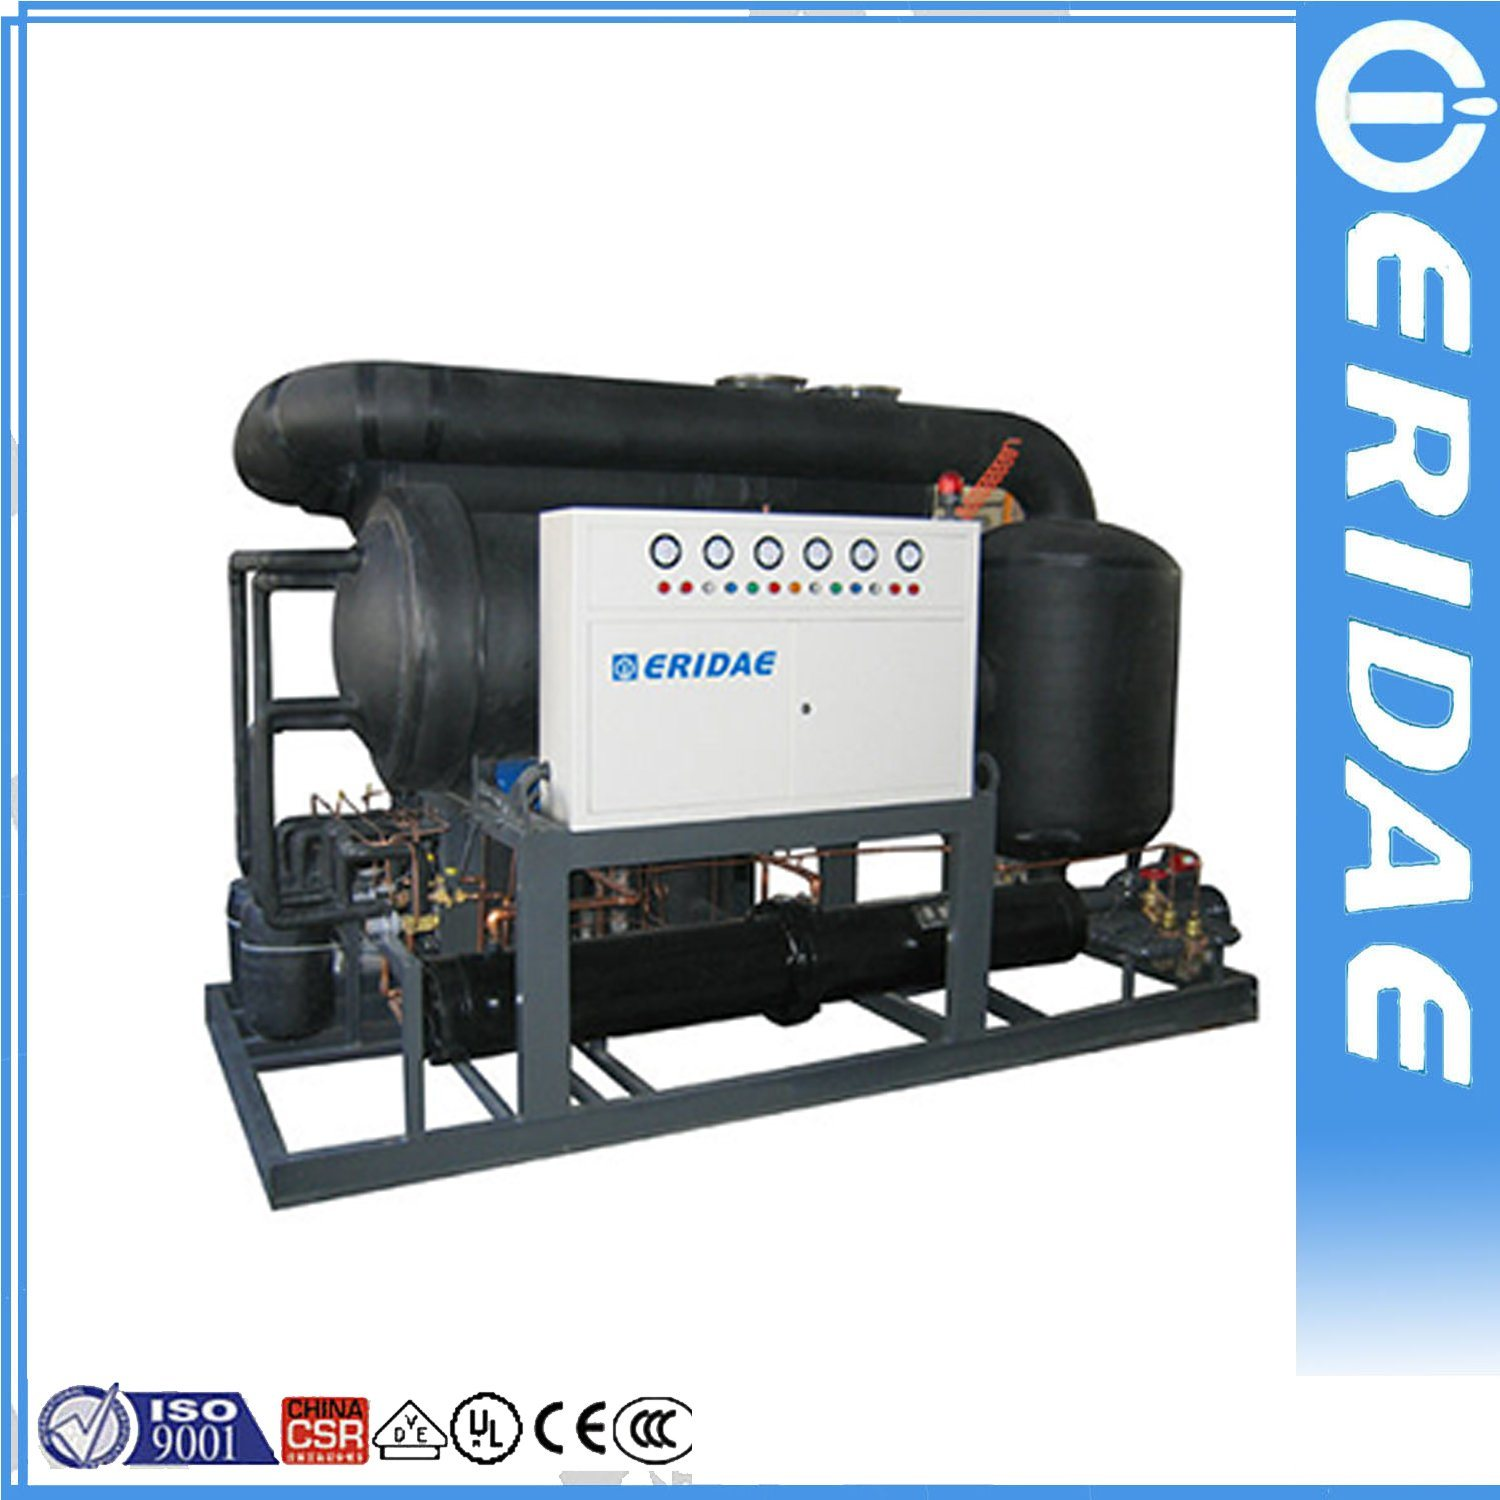 Air Dryer For Air Compressor >> China High Quality Eridae Refrigerated Air Dryer For Air Compressor